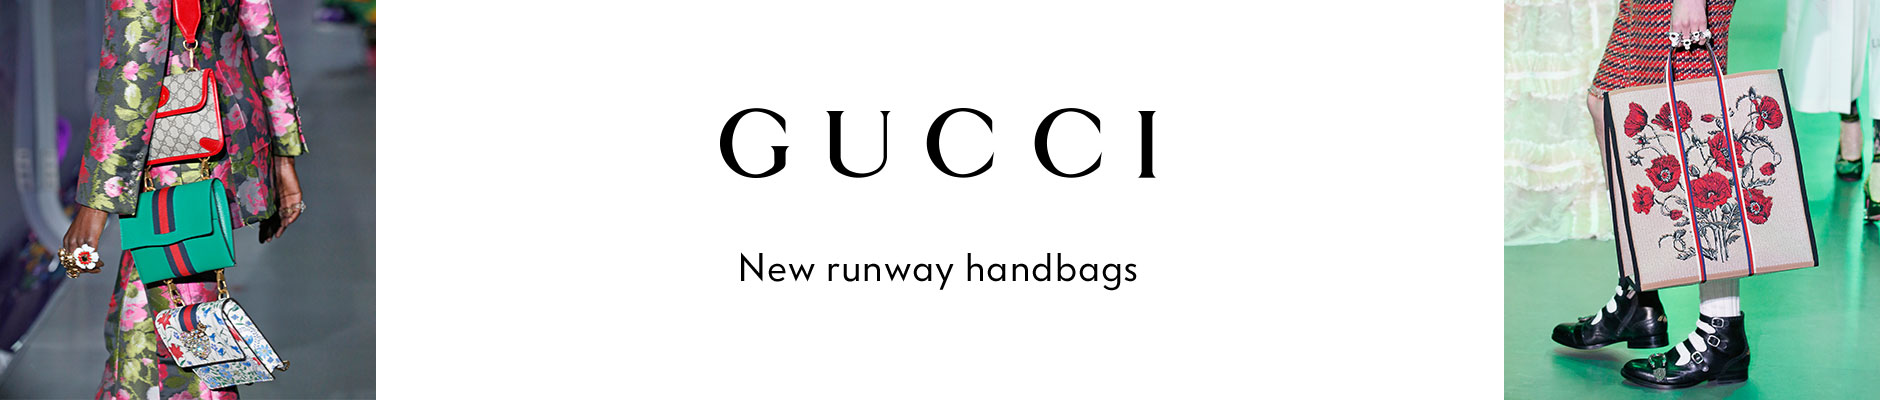 Gucci - New runway handbags